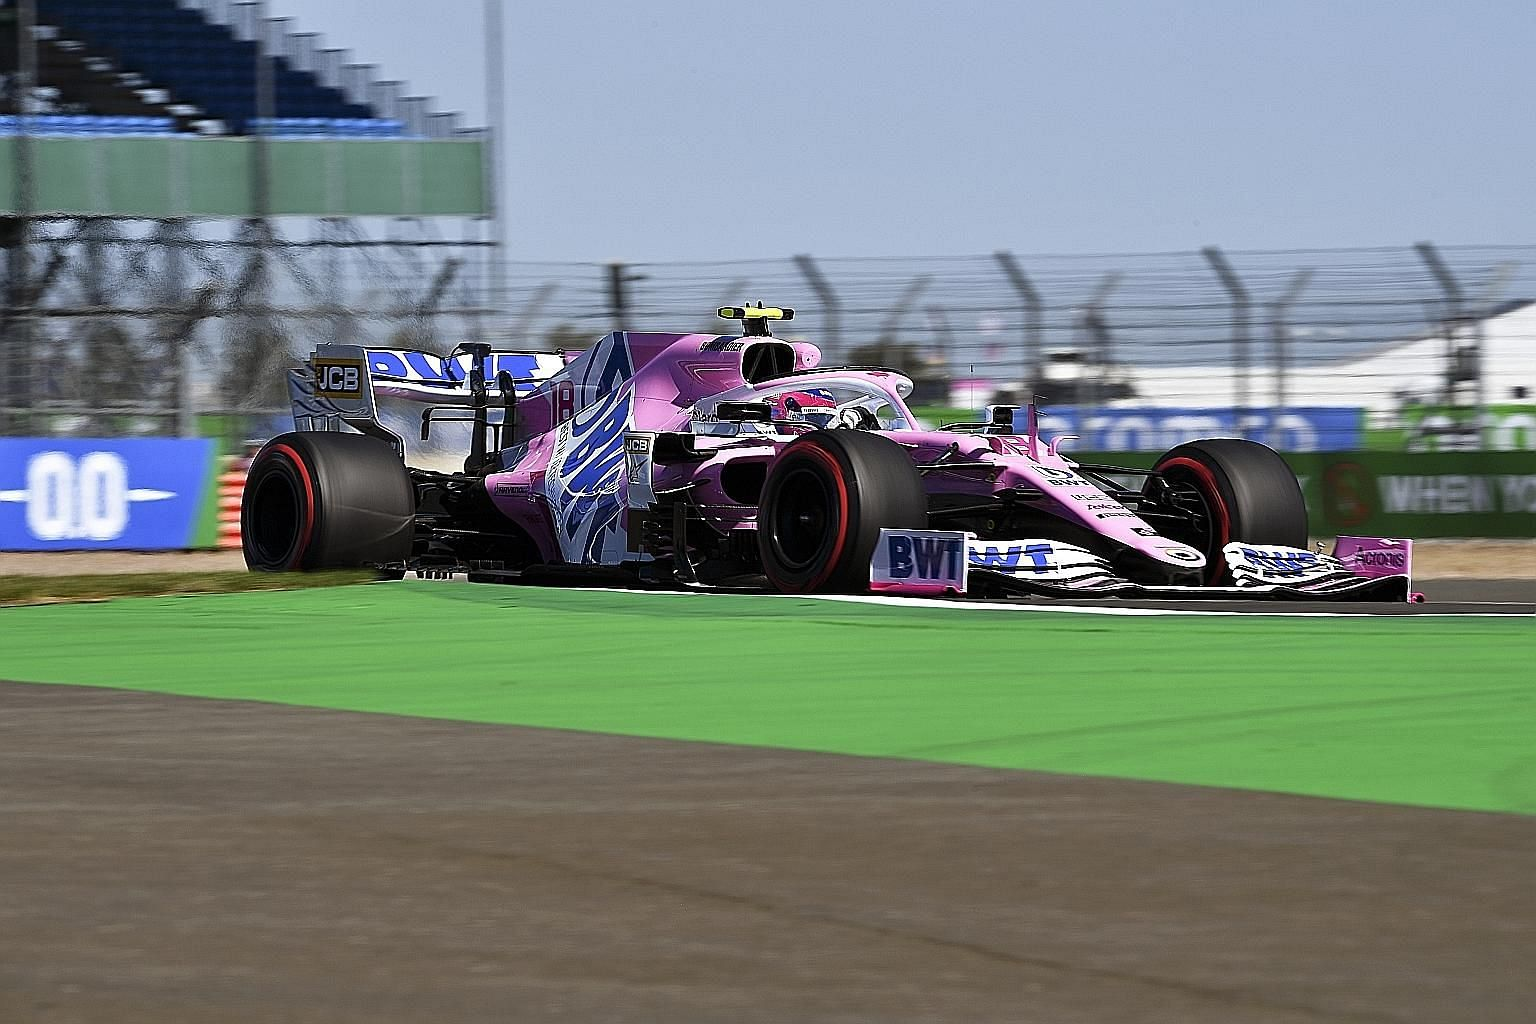 Lance Stroll of Racing Point during the first practice session of the 70th Anniversary Grand Prix at Silverstone yesterday. He and teammate Sergio Perez will keep their points in the drivers' standings.